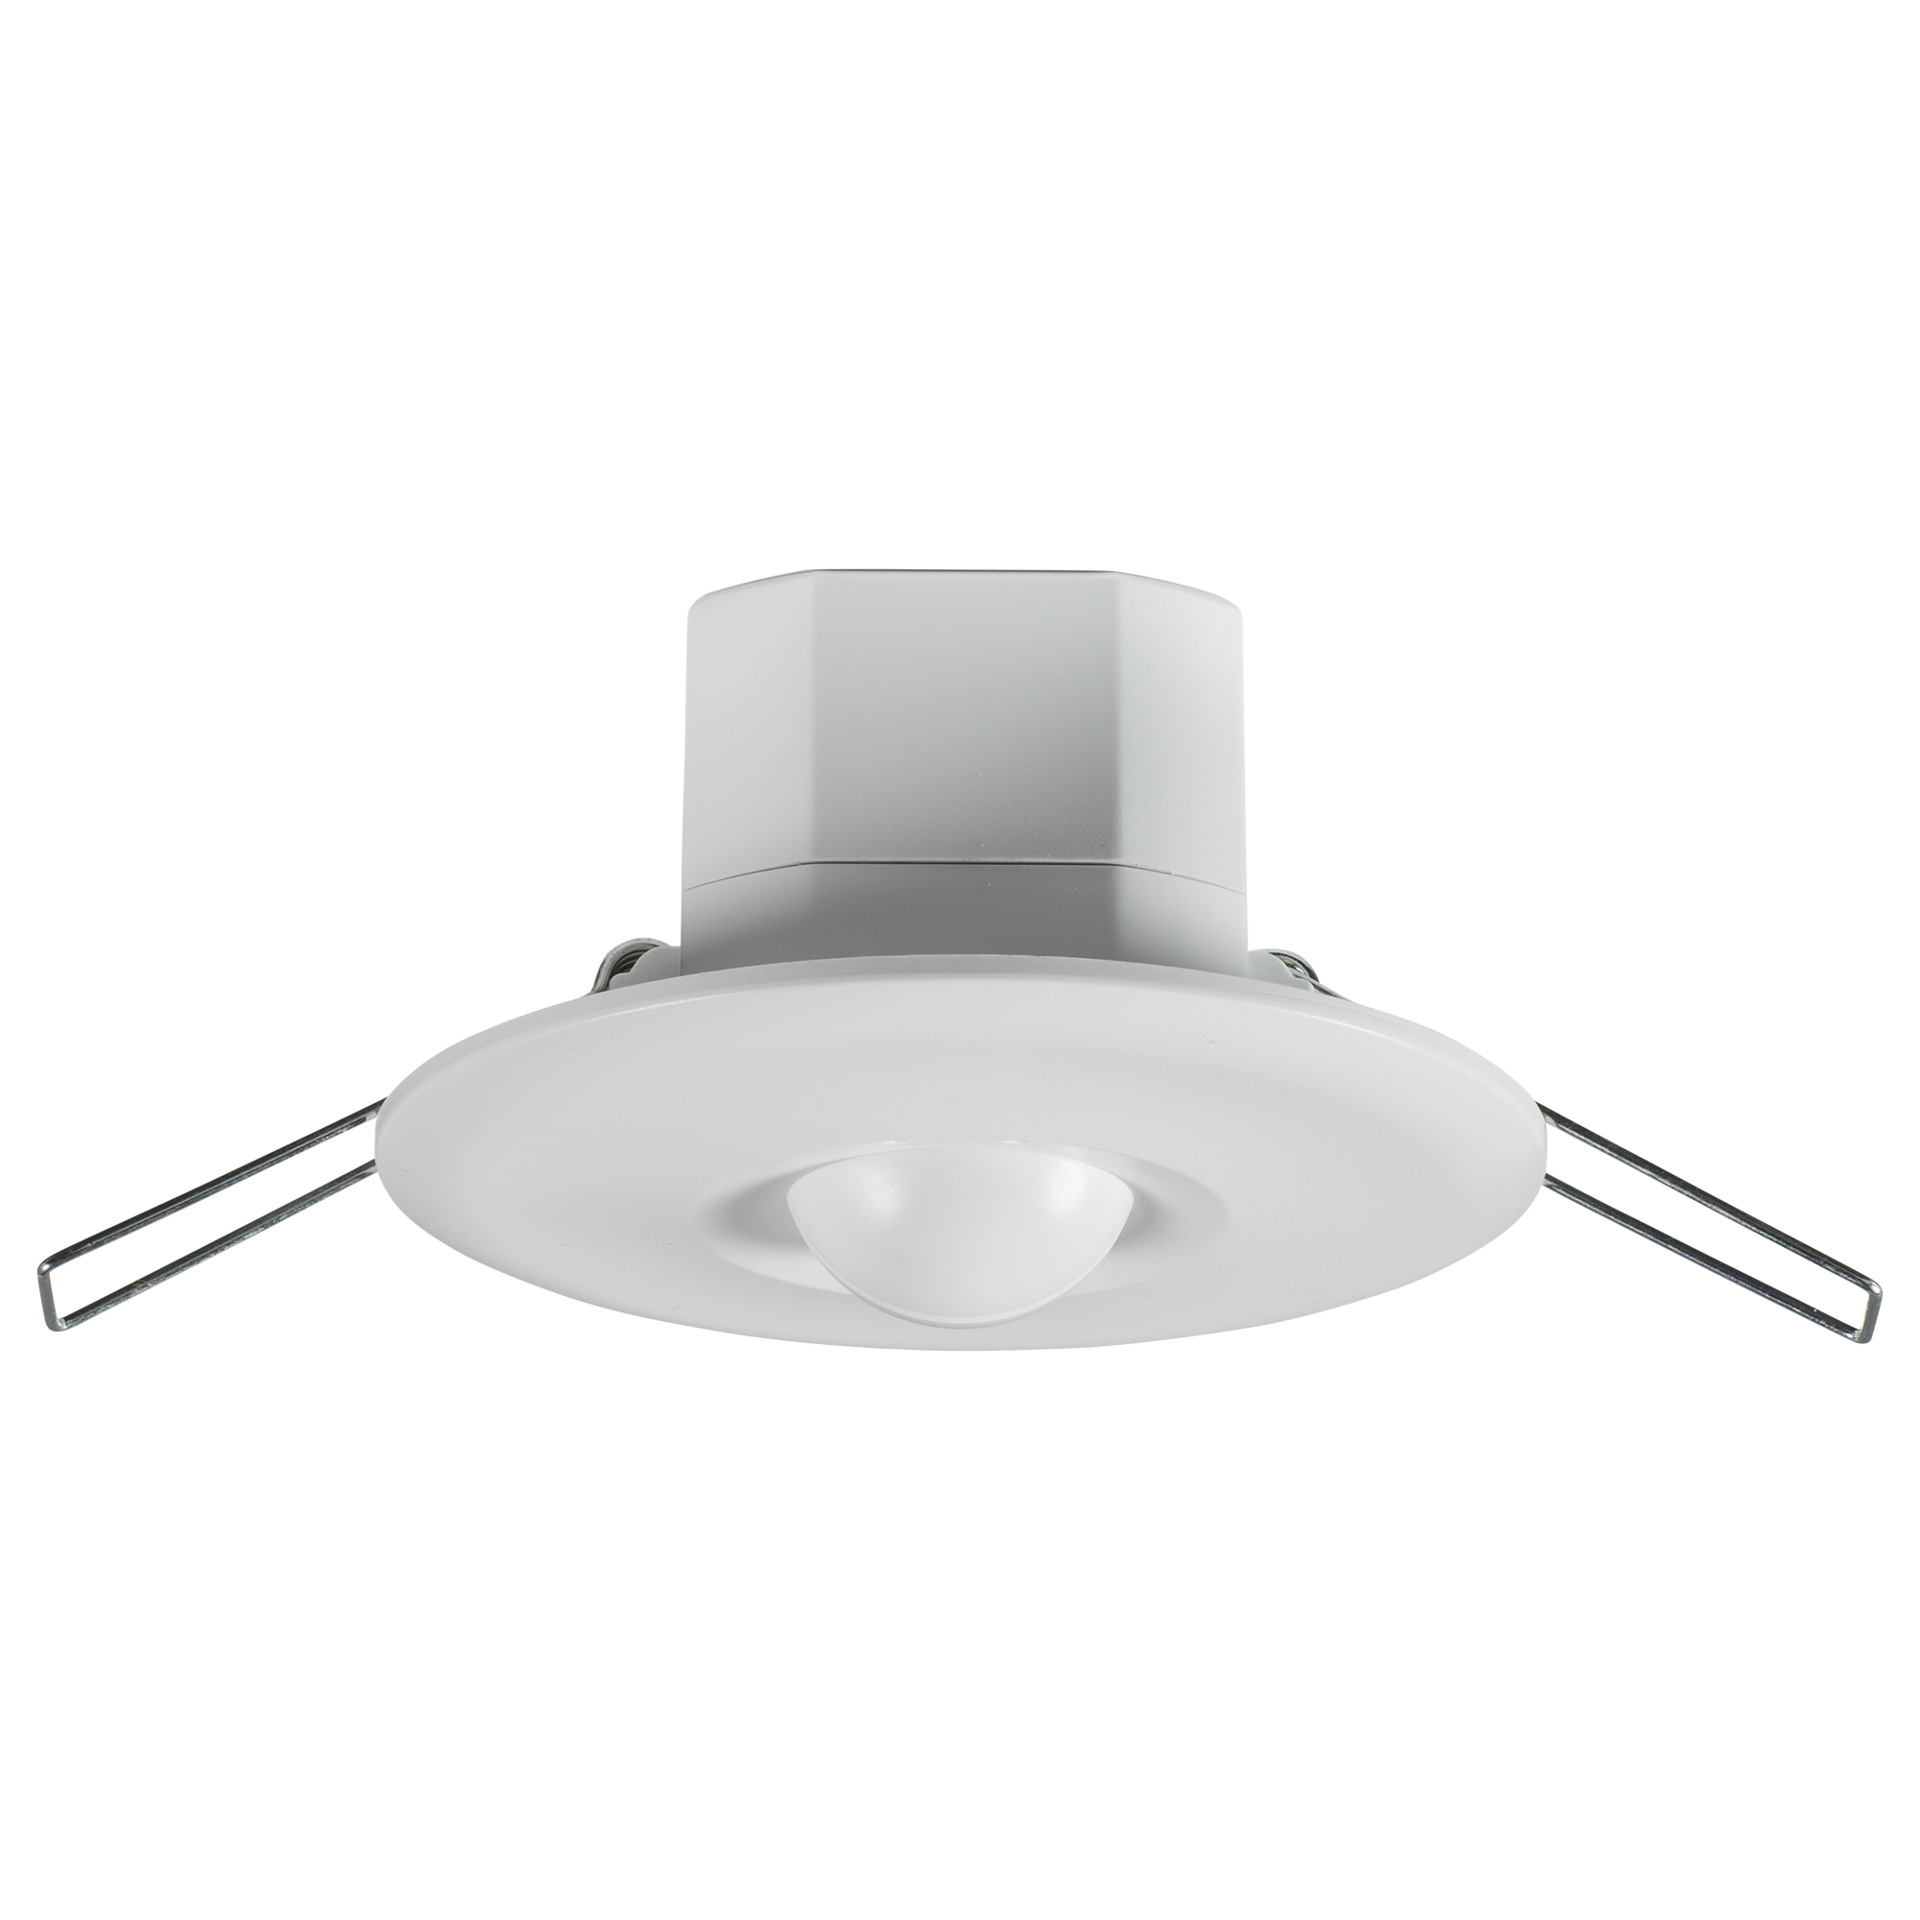 IP20 5.8GHz microwave sensor - recess mounting